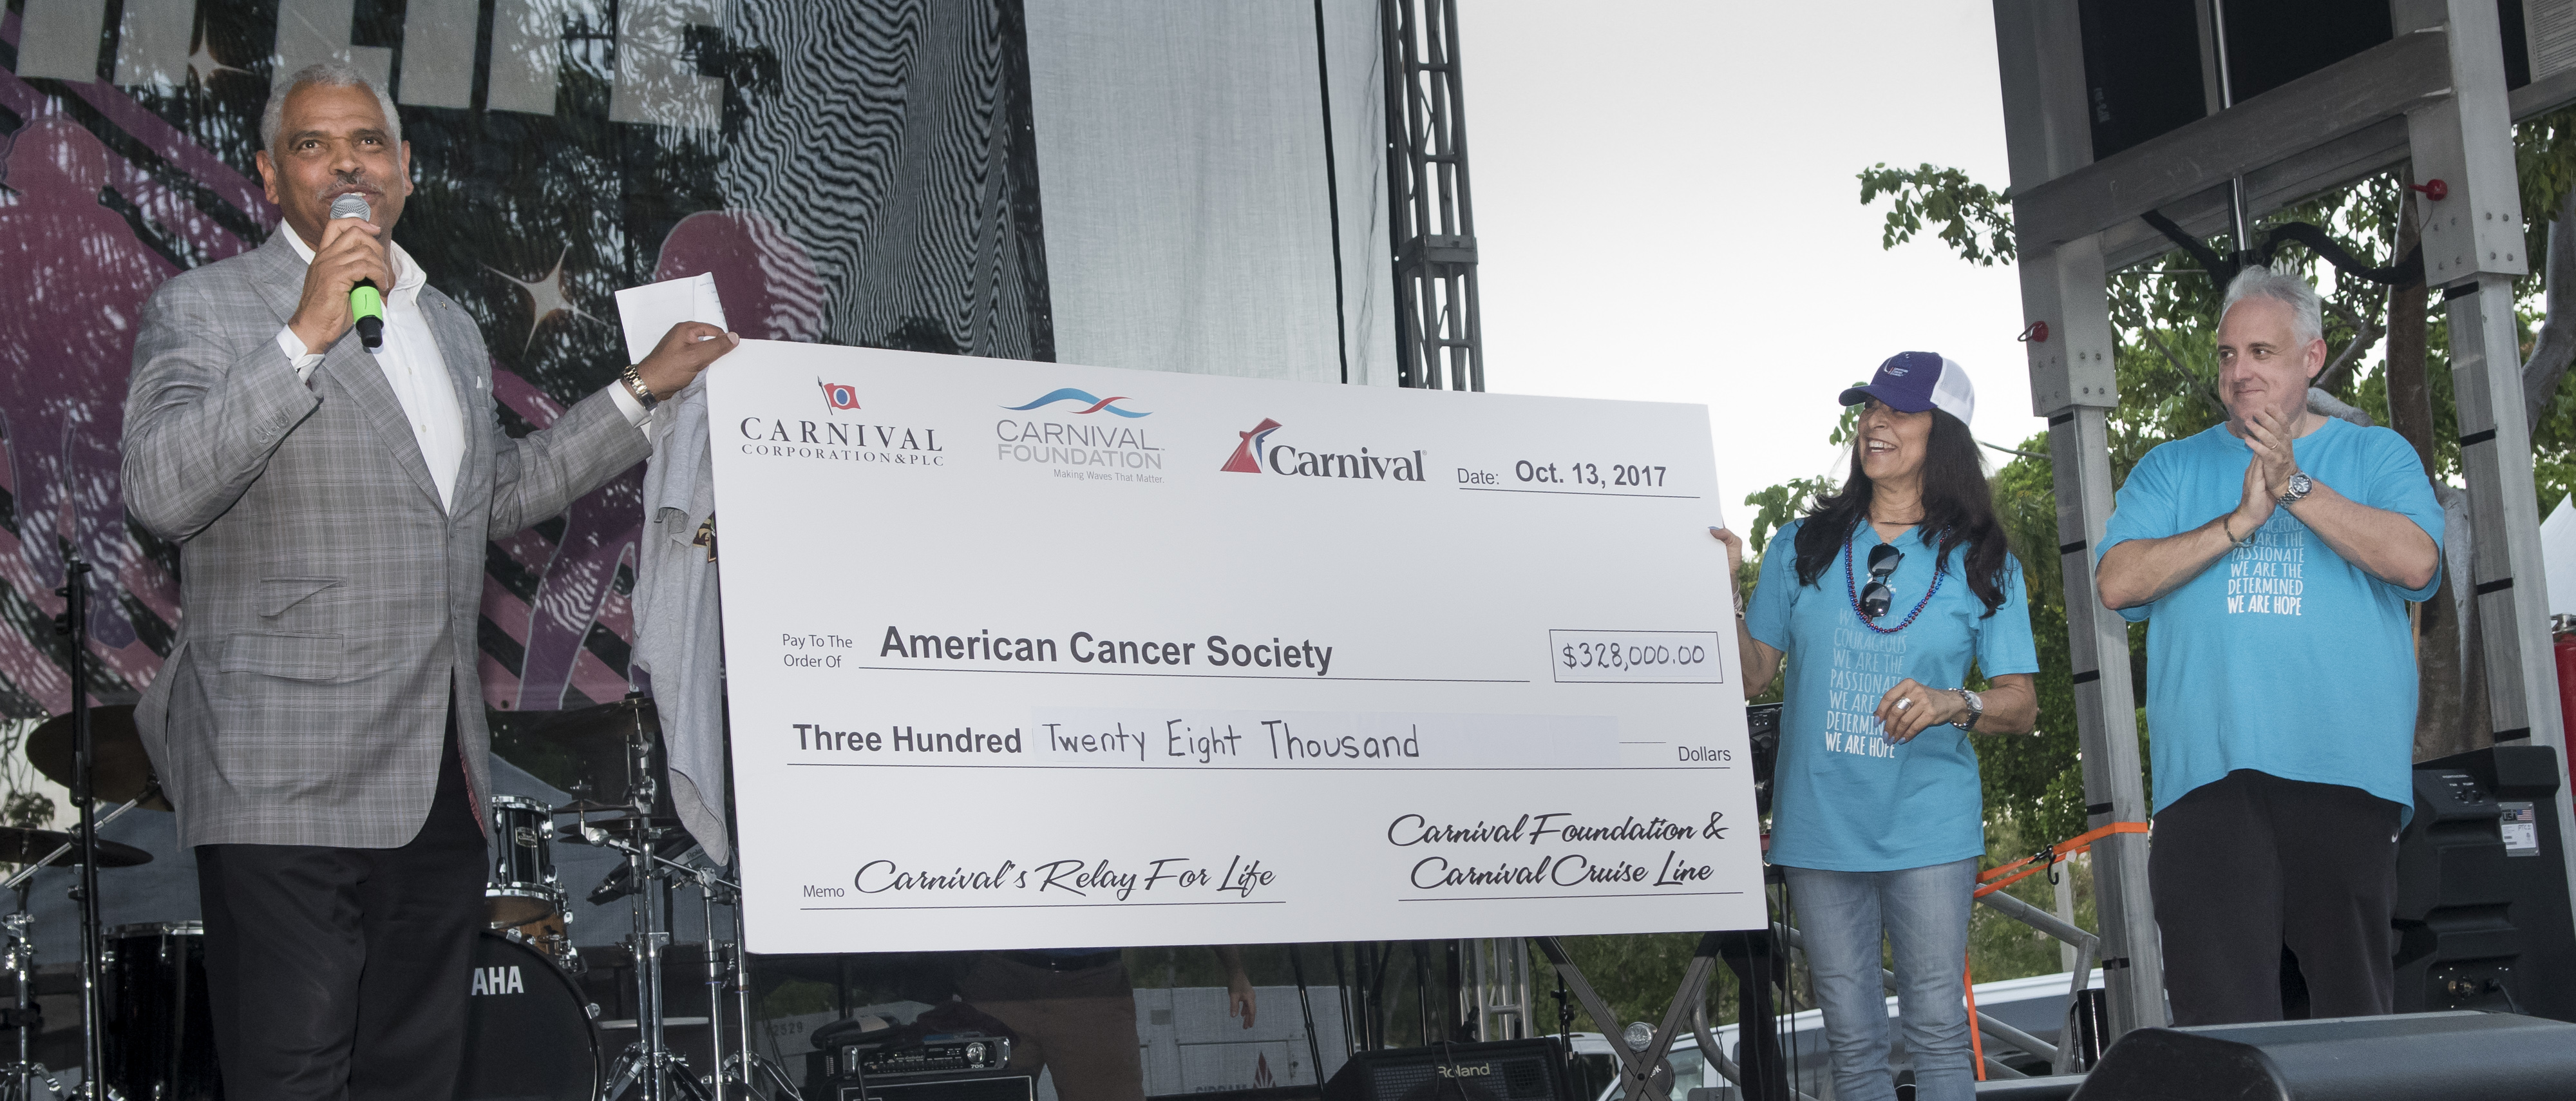 Carnival Corporation Raises Record $338,500 for American Cancer Society